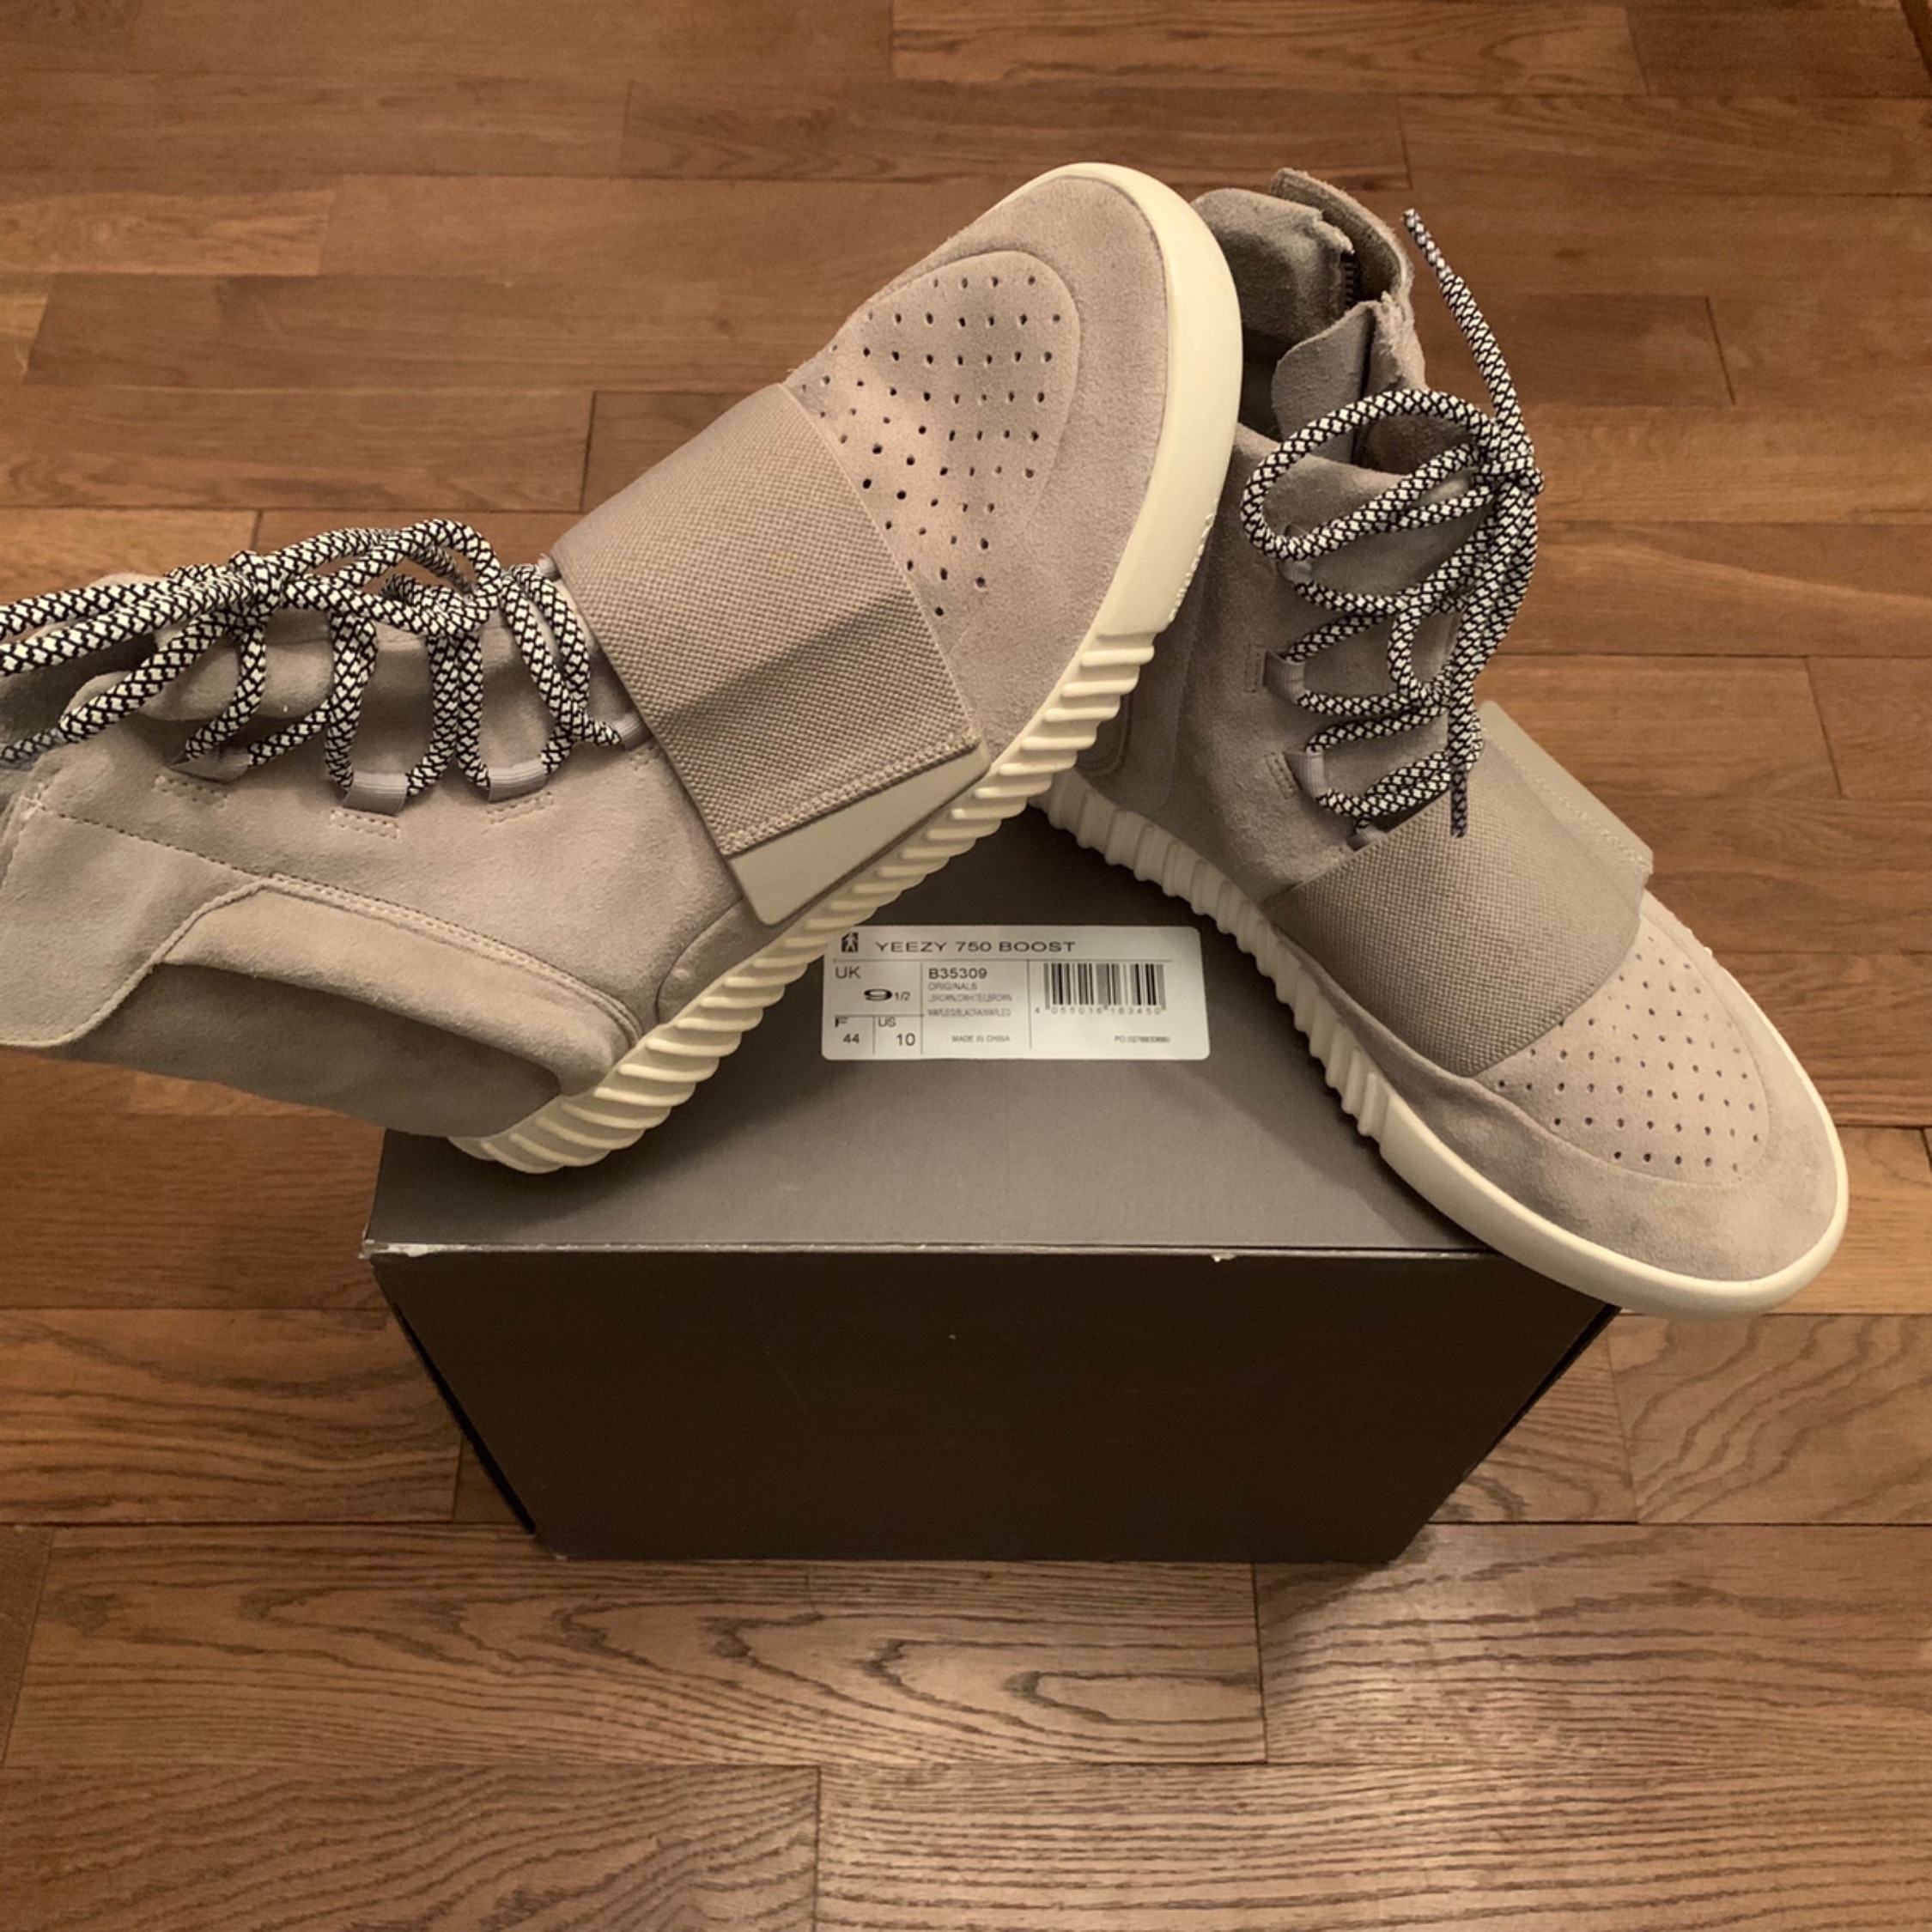 724f1233a Yezzy 750 Boost.  999. US 10.5